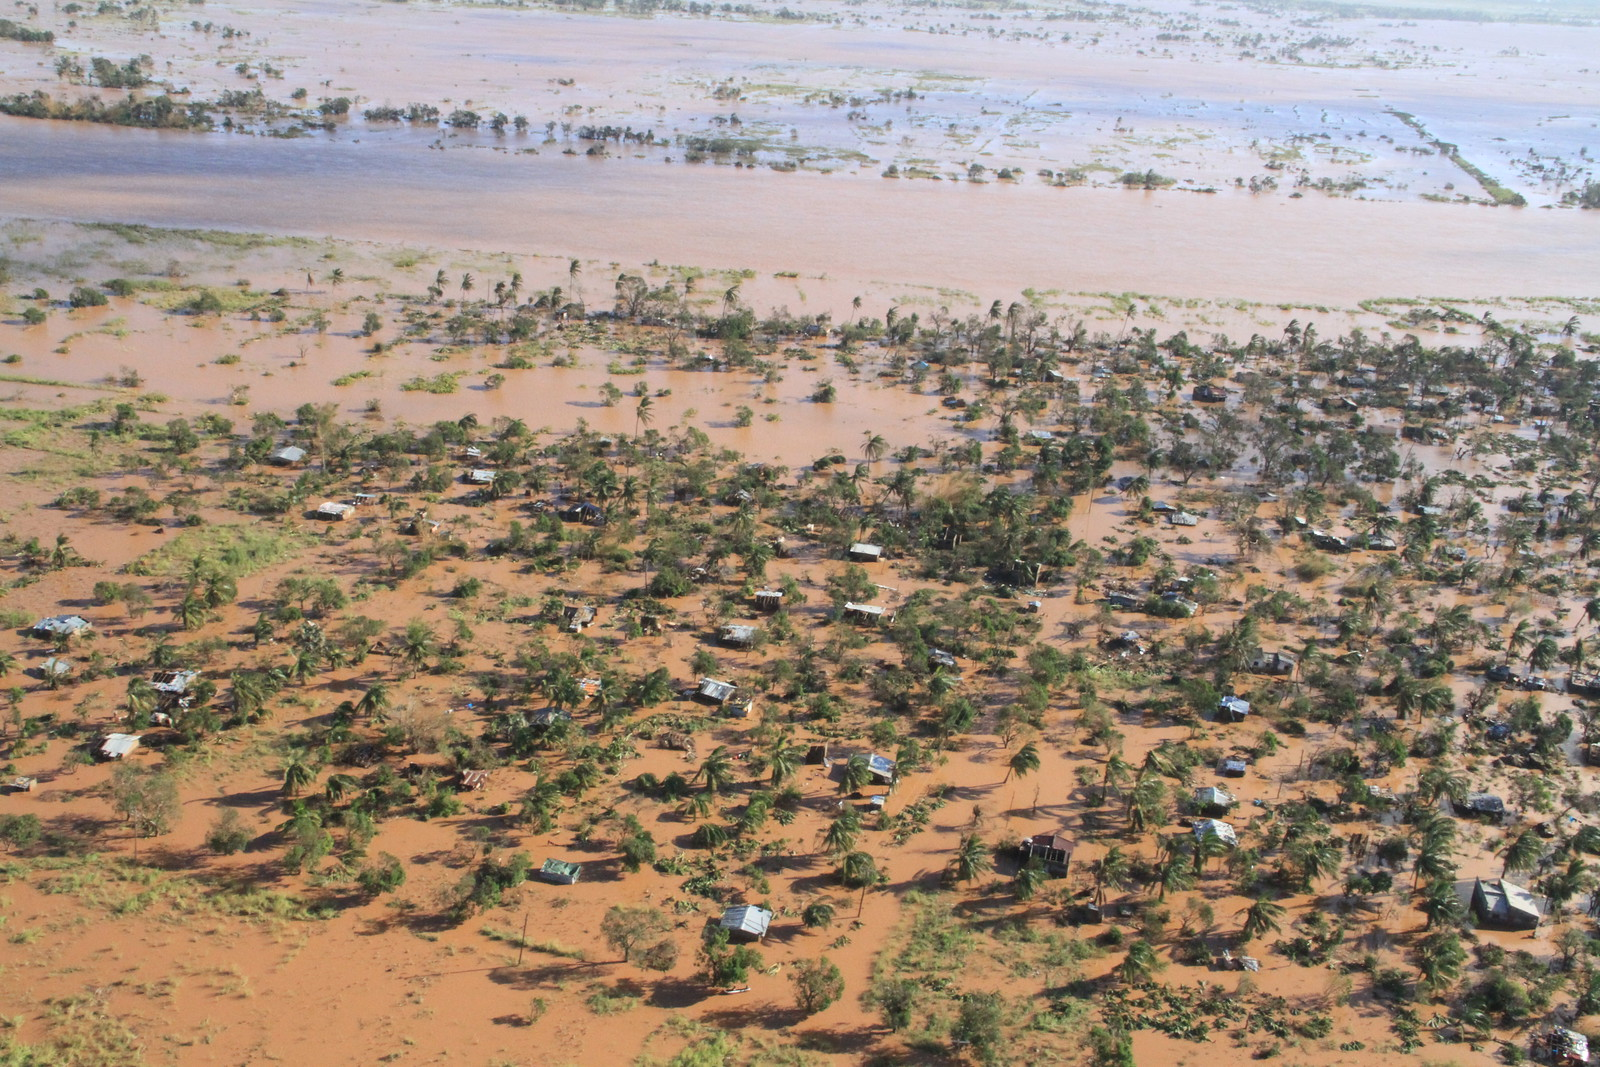 cyclone_idai_flooding_of_the_buzi_area_ocha_saviano_abreu_march_2019.jpg